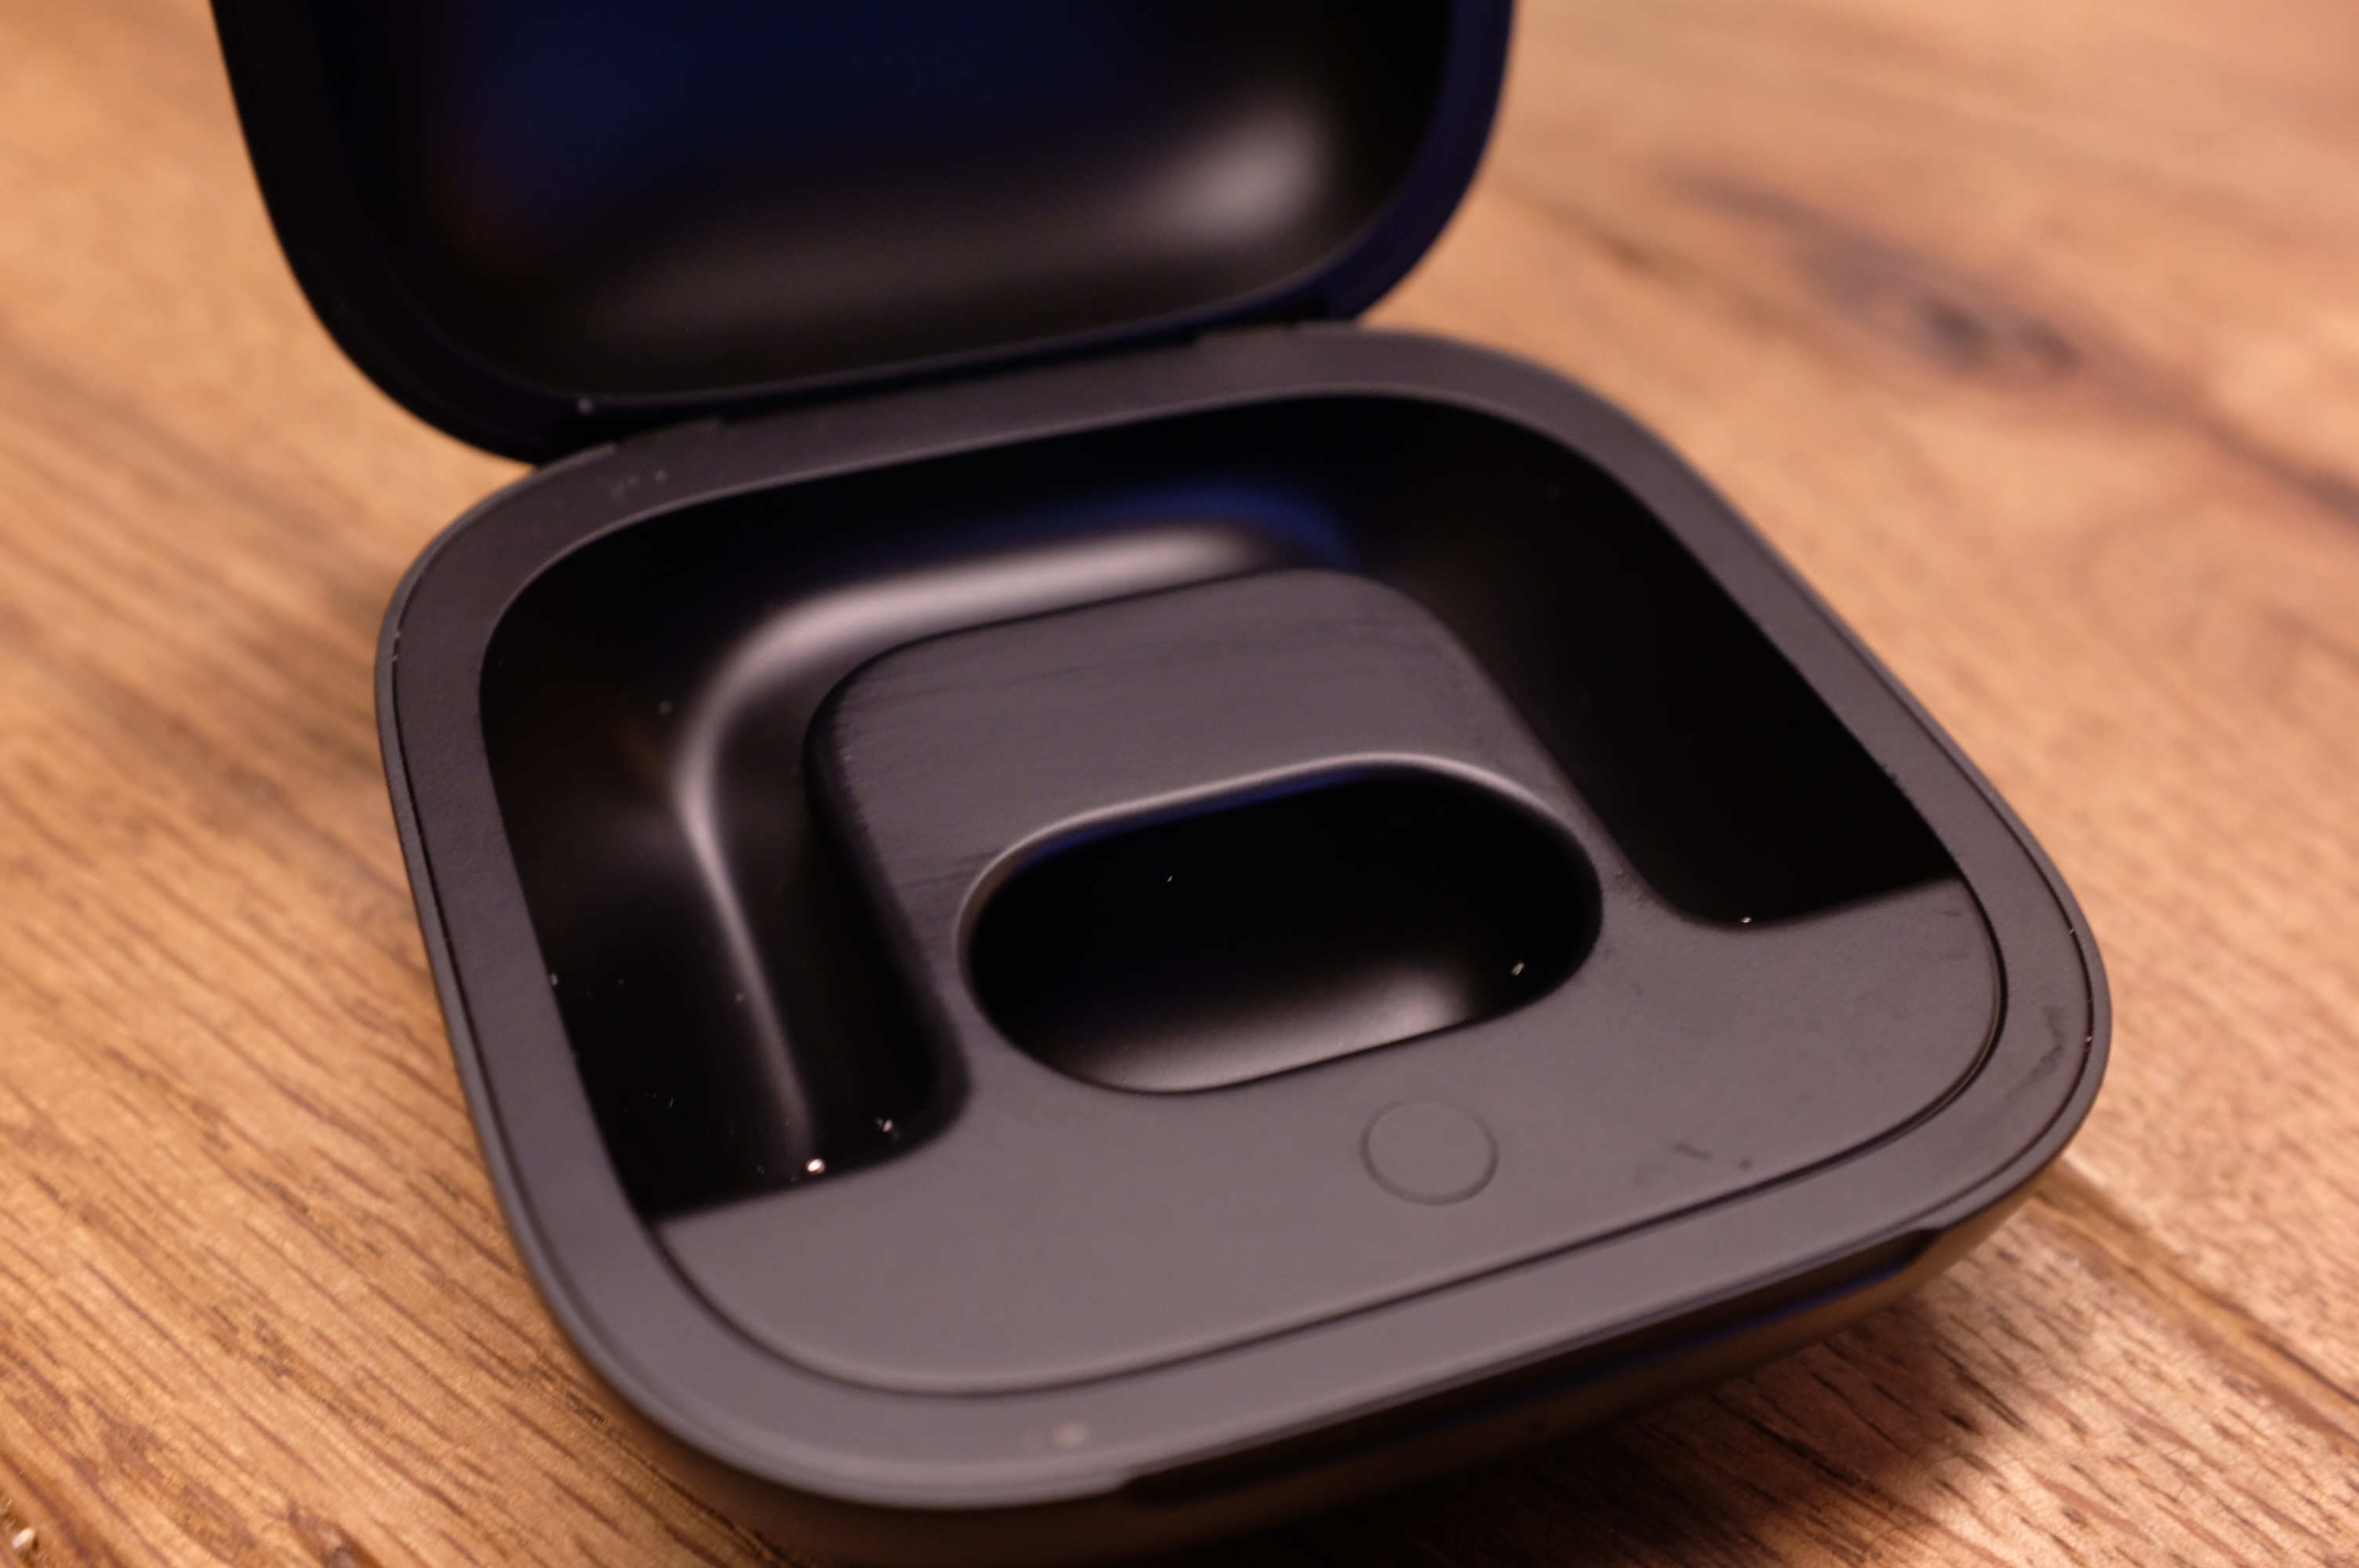 Powerbeats Pro are the Bluetooth earbuds to beat | TechCrunch